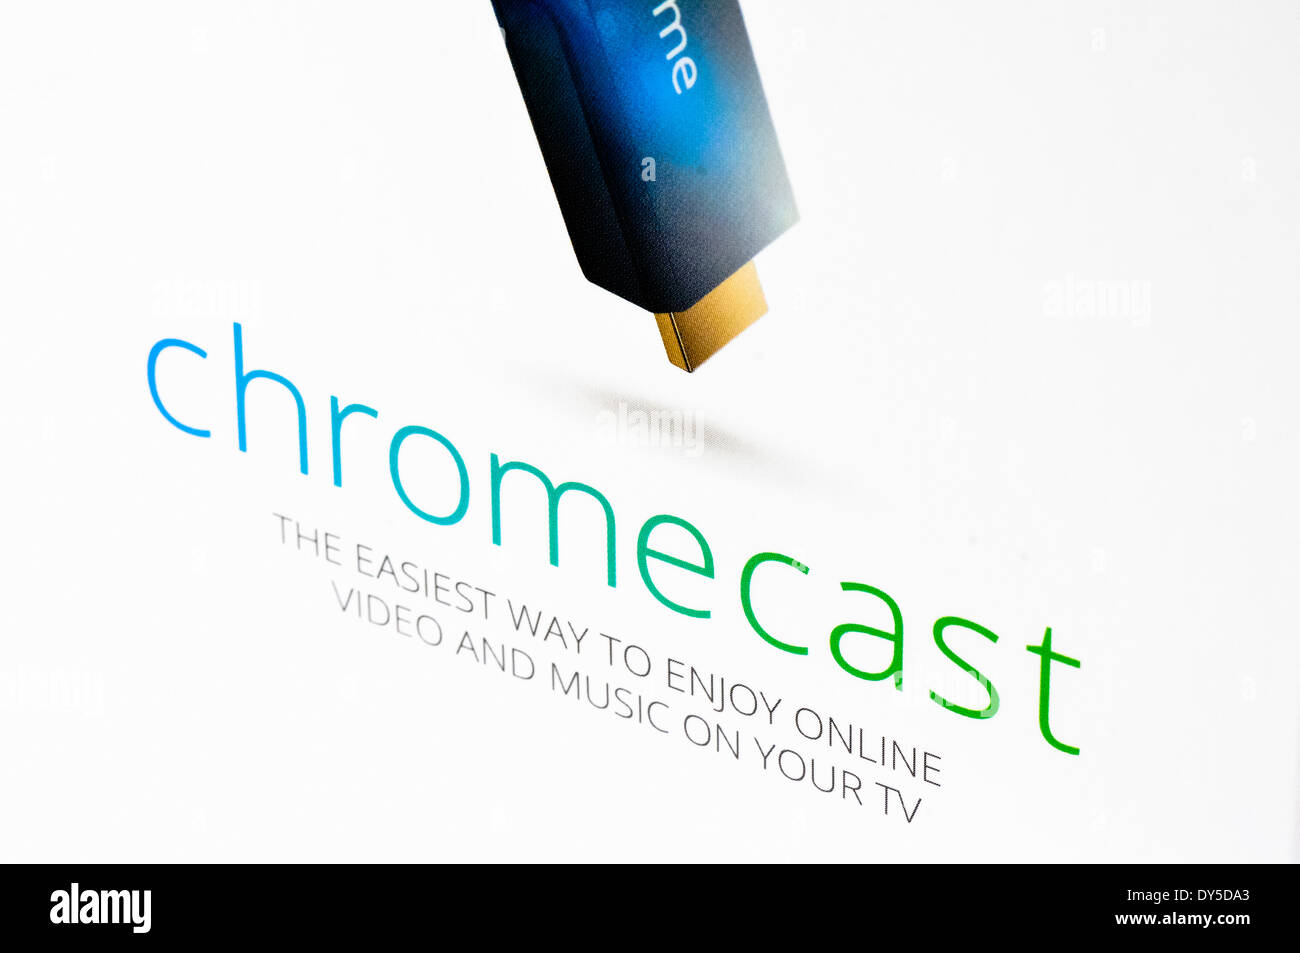 Google TV Chromecast dispositivo di streaming Immagini Stock